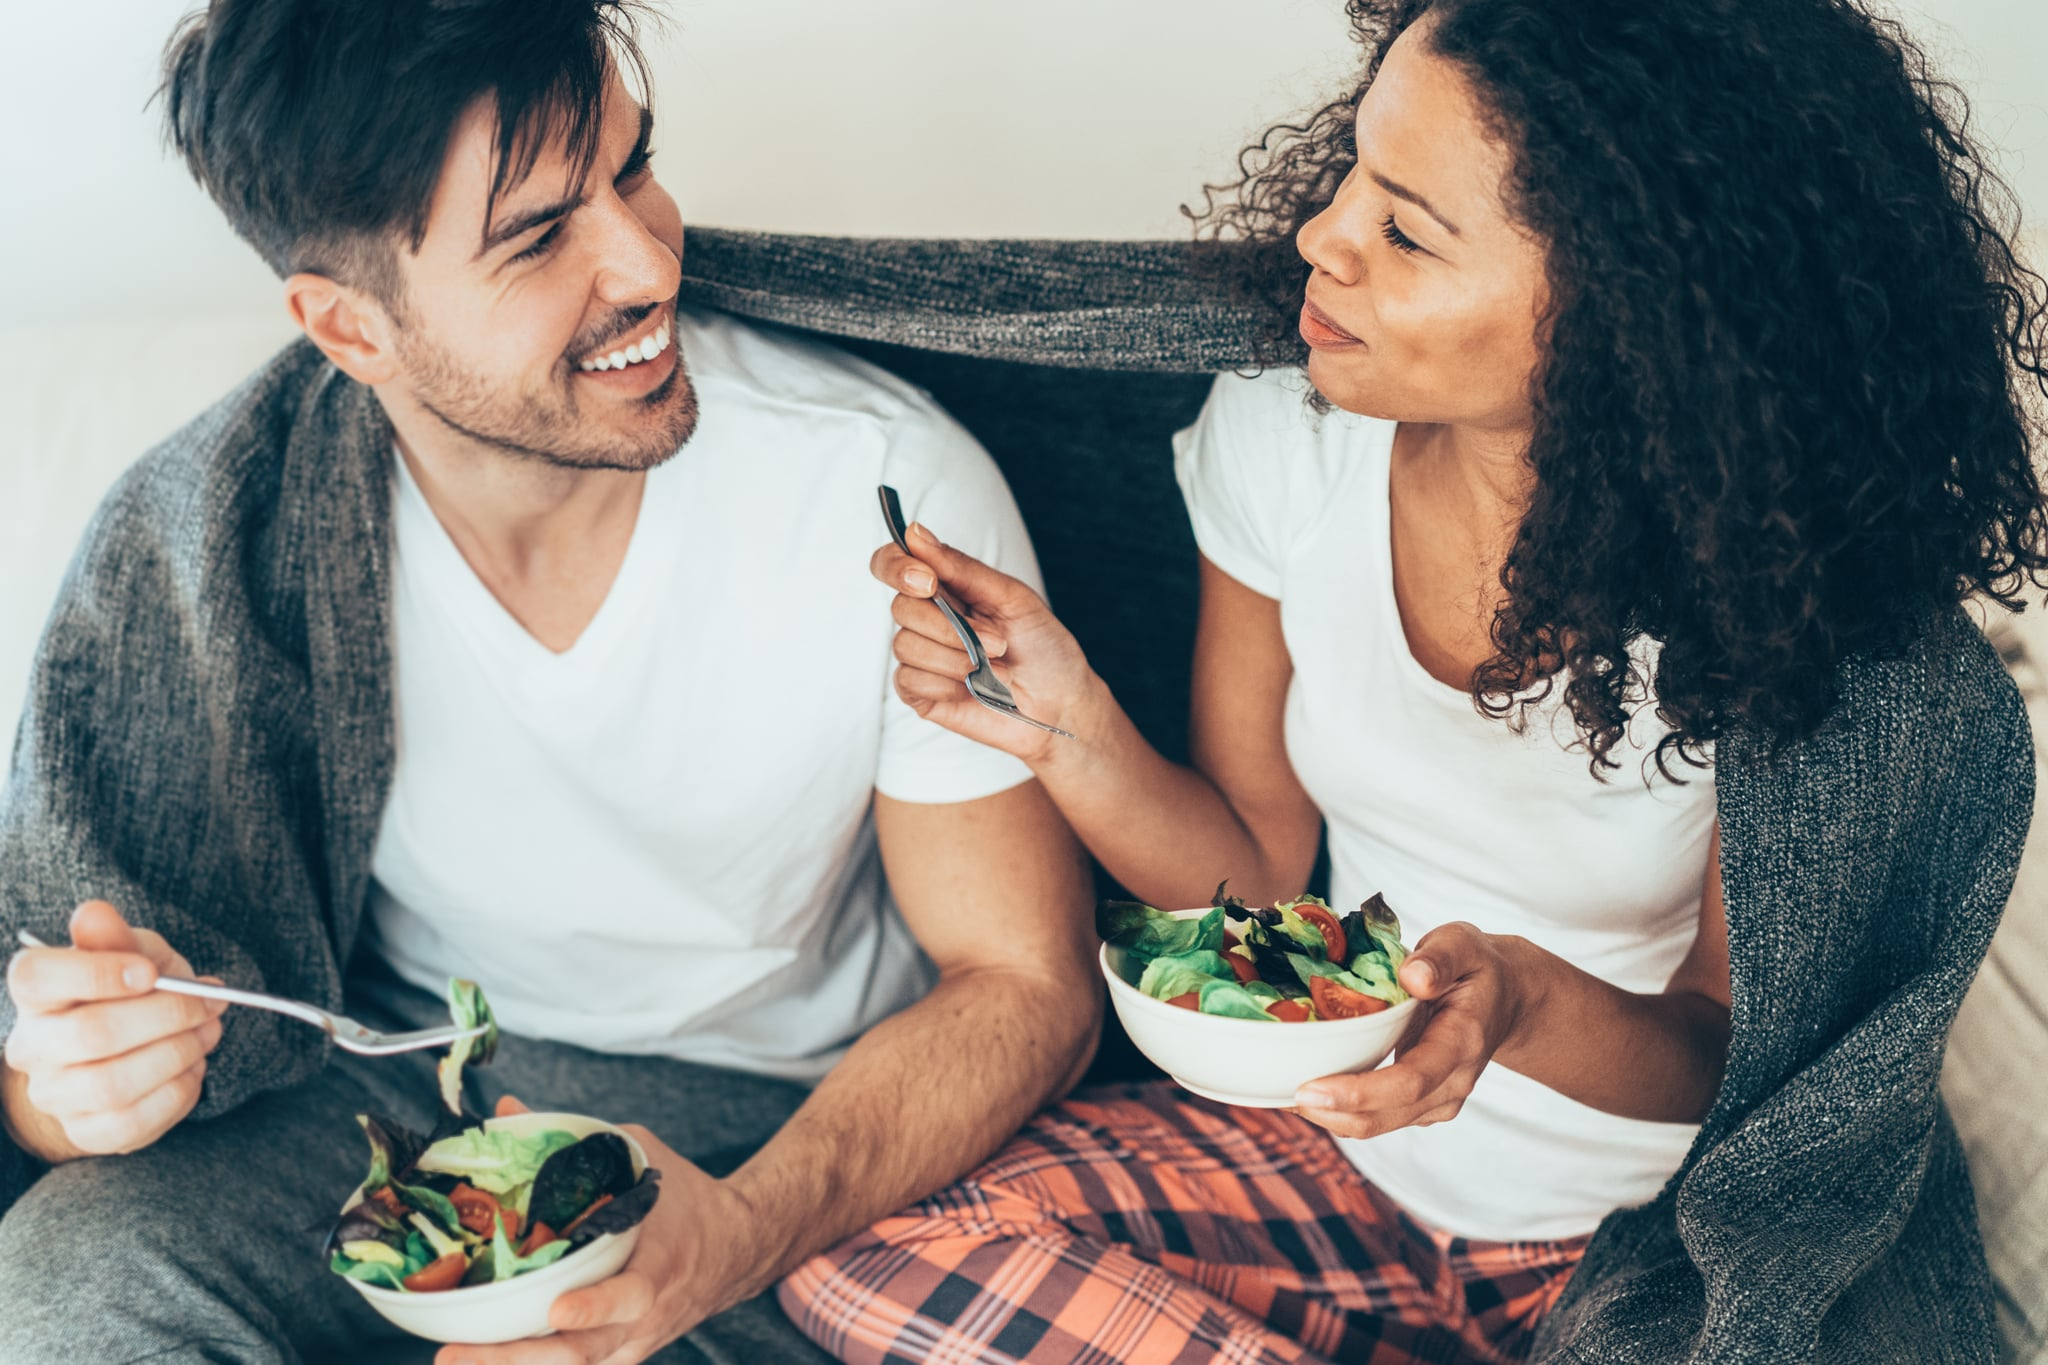 Beautiful Couple in love eating salad together